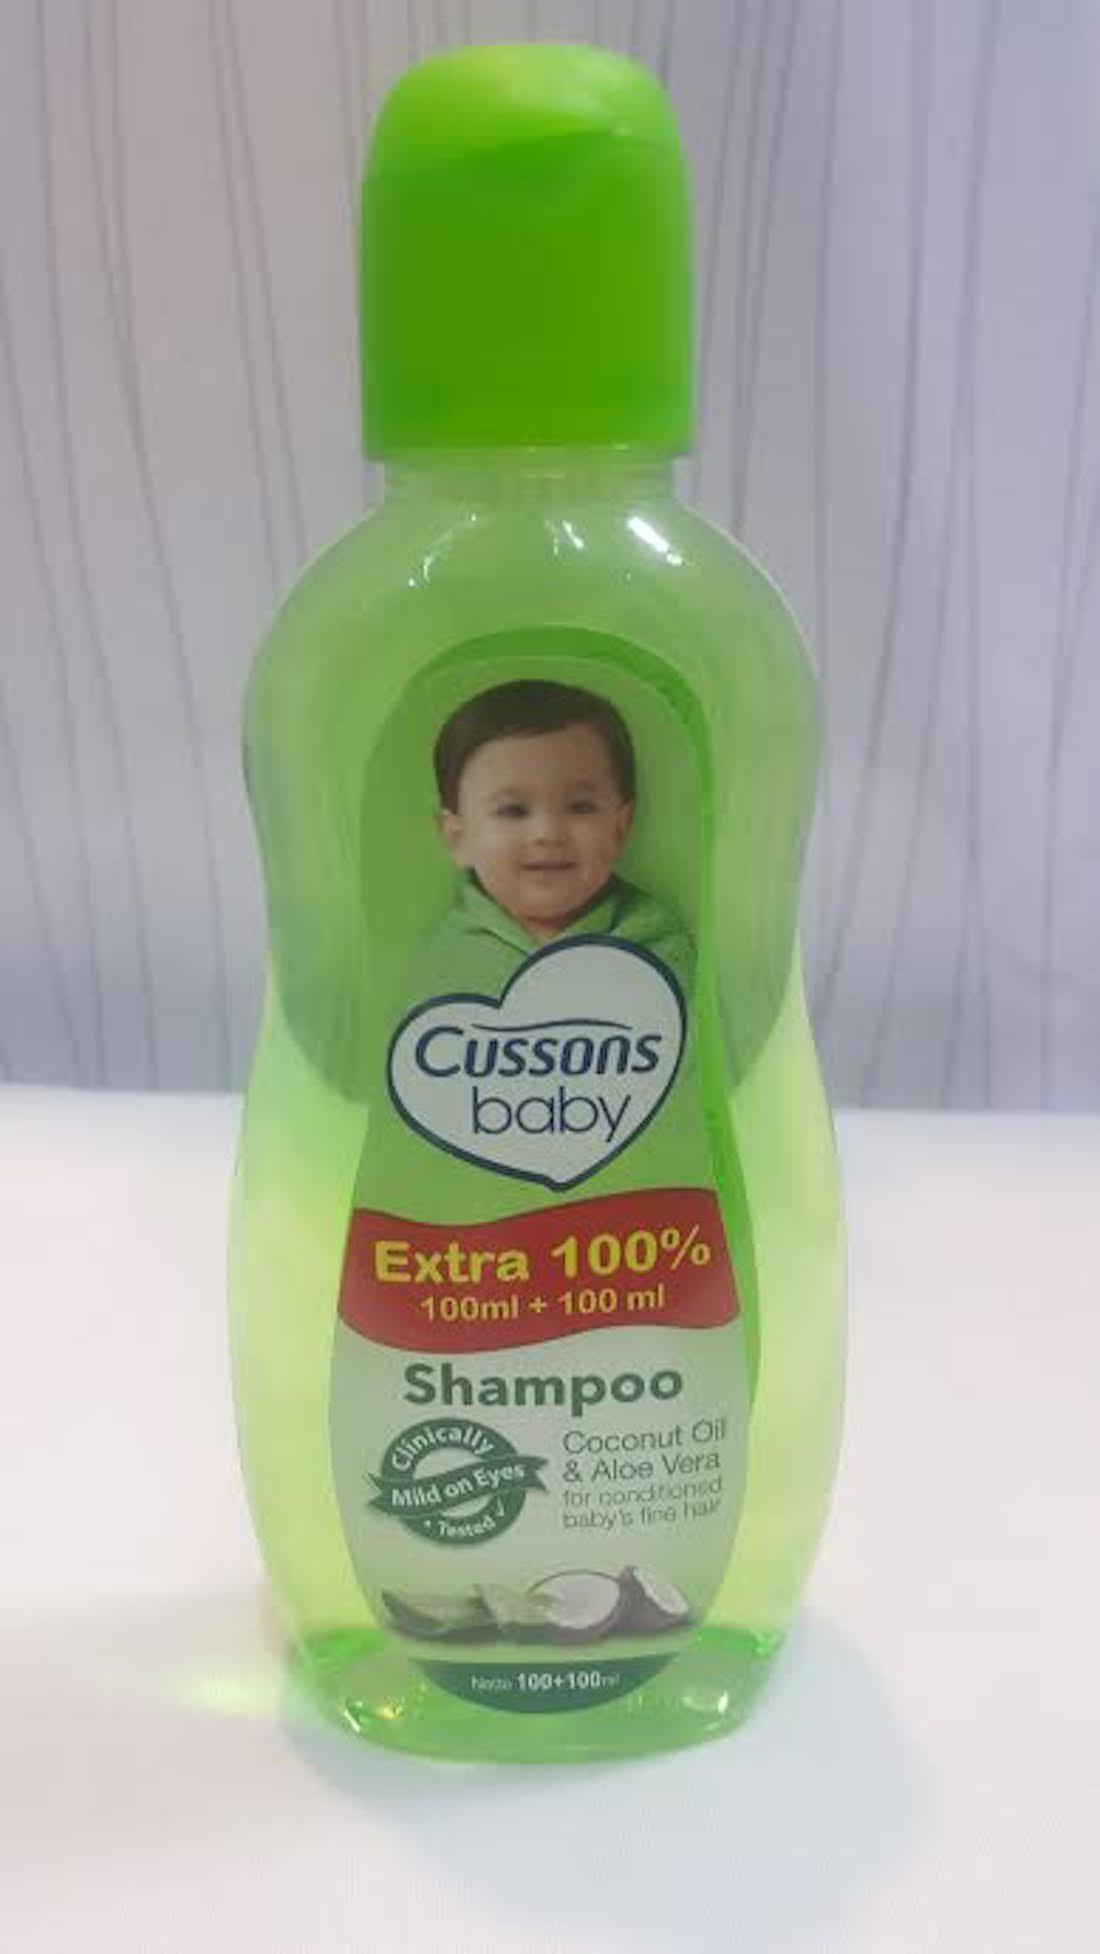 Cussons Baby Shampoo Coconut Oil & Aloe Vera Mild On Eyes Fine Hair 100 +100ml